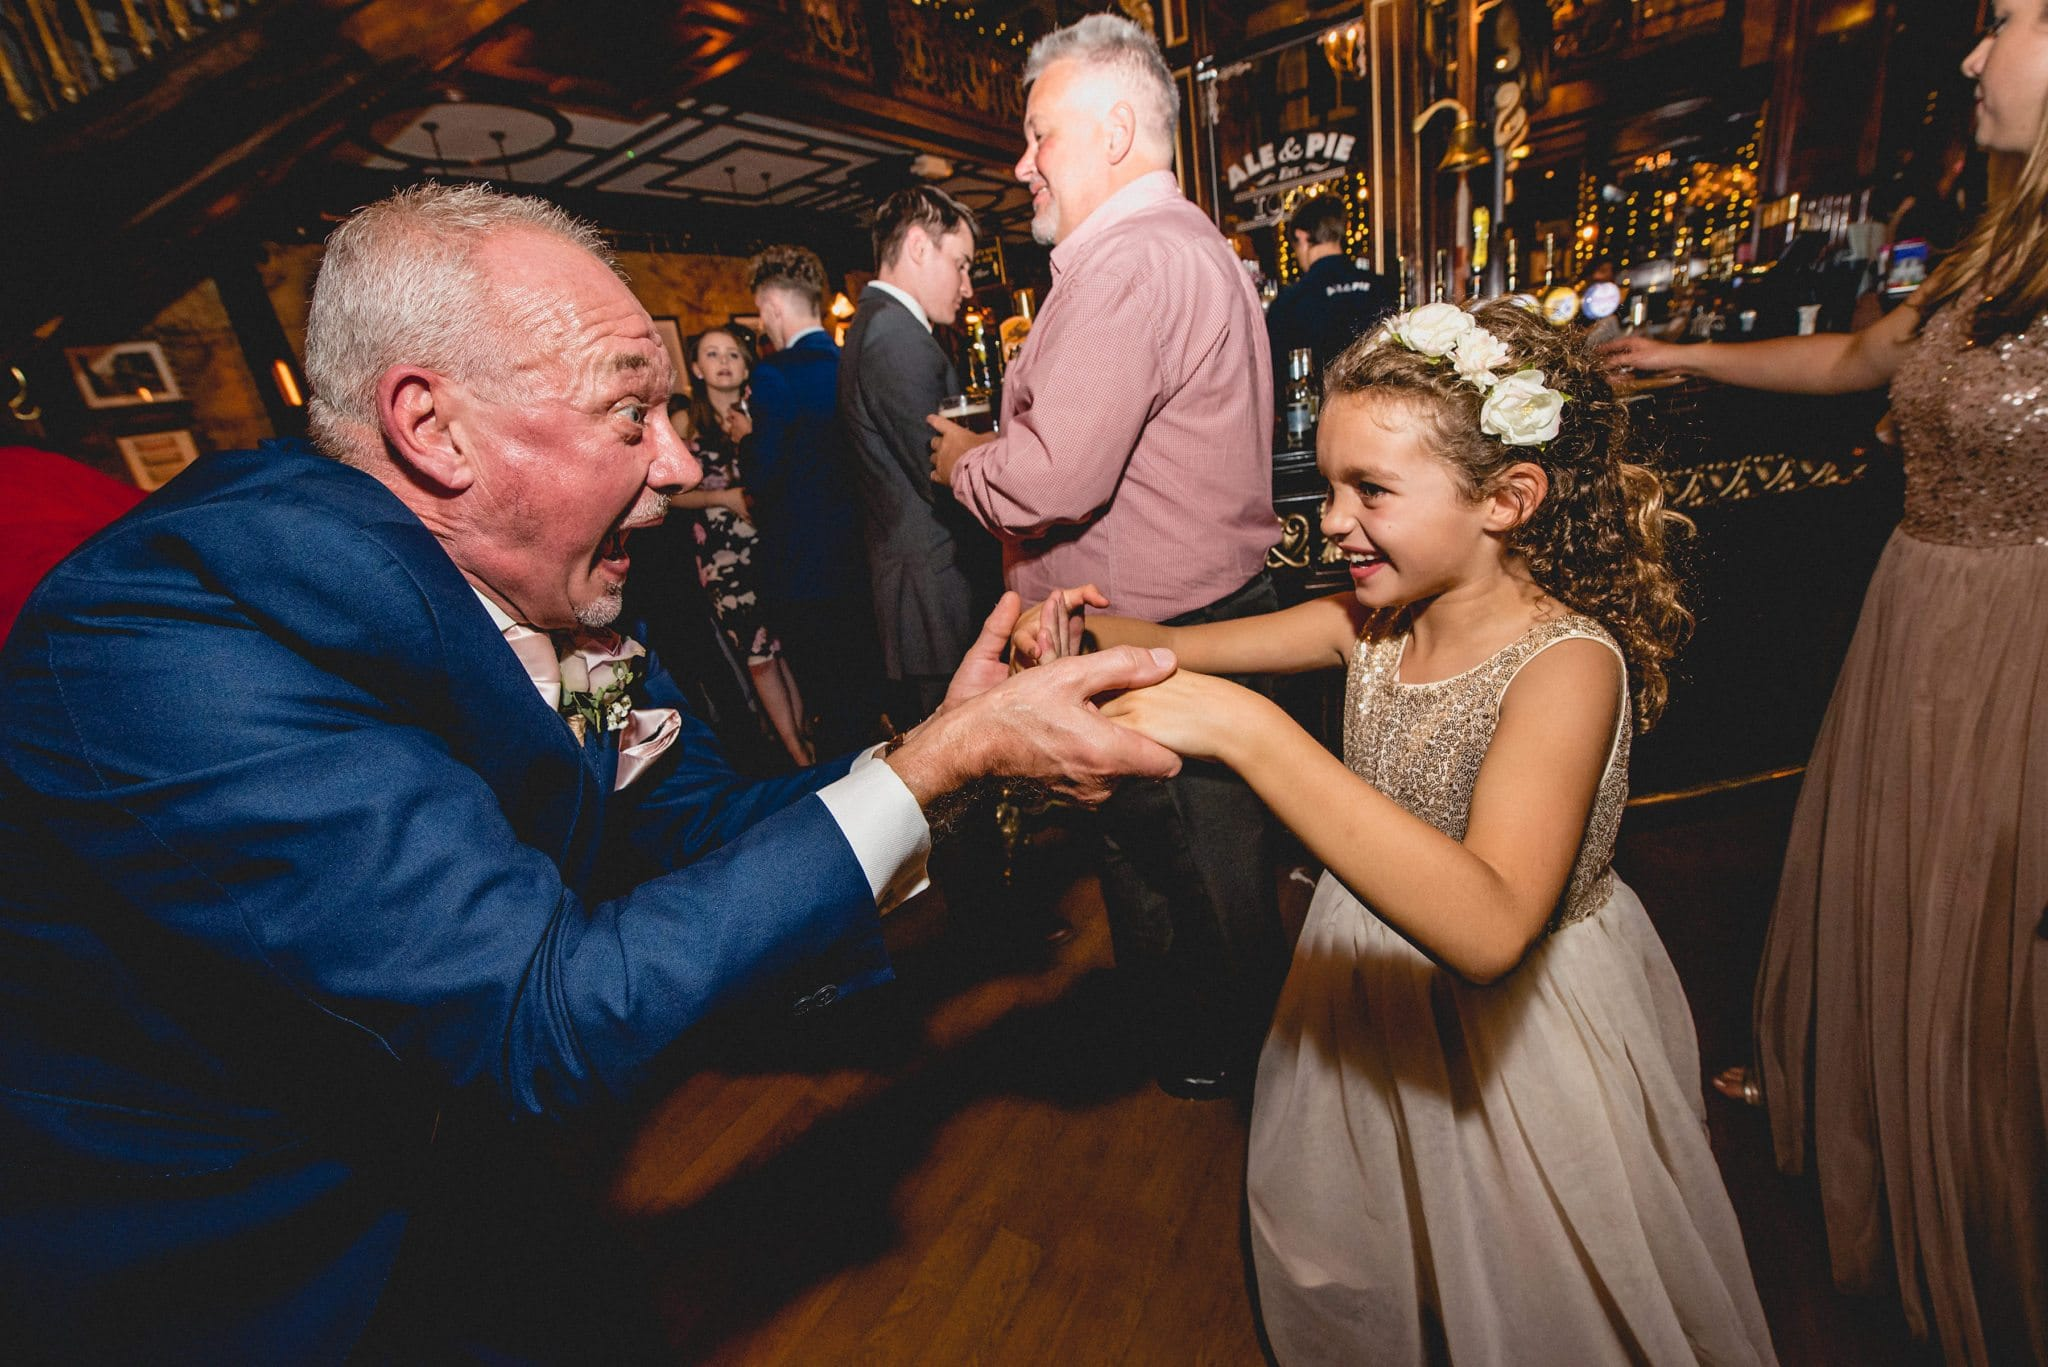 Flower girl dances with a guest at the reception